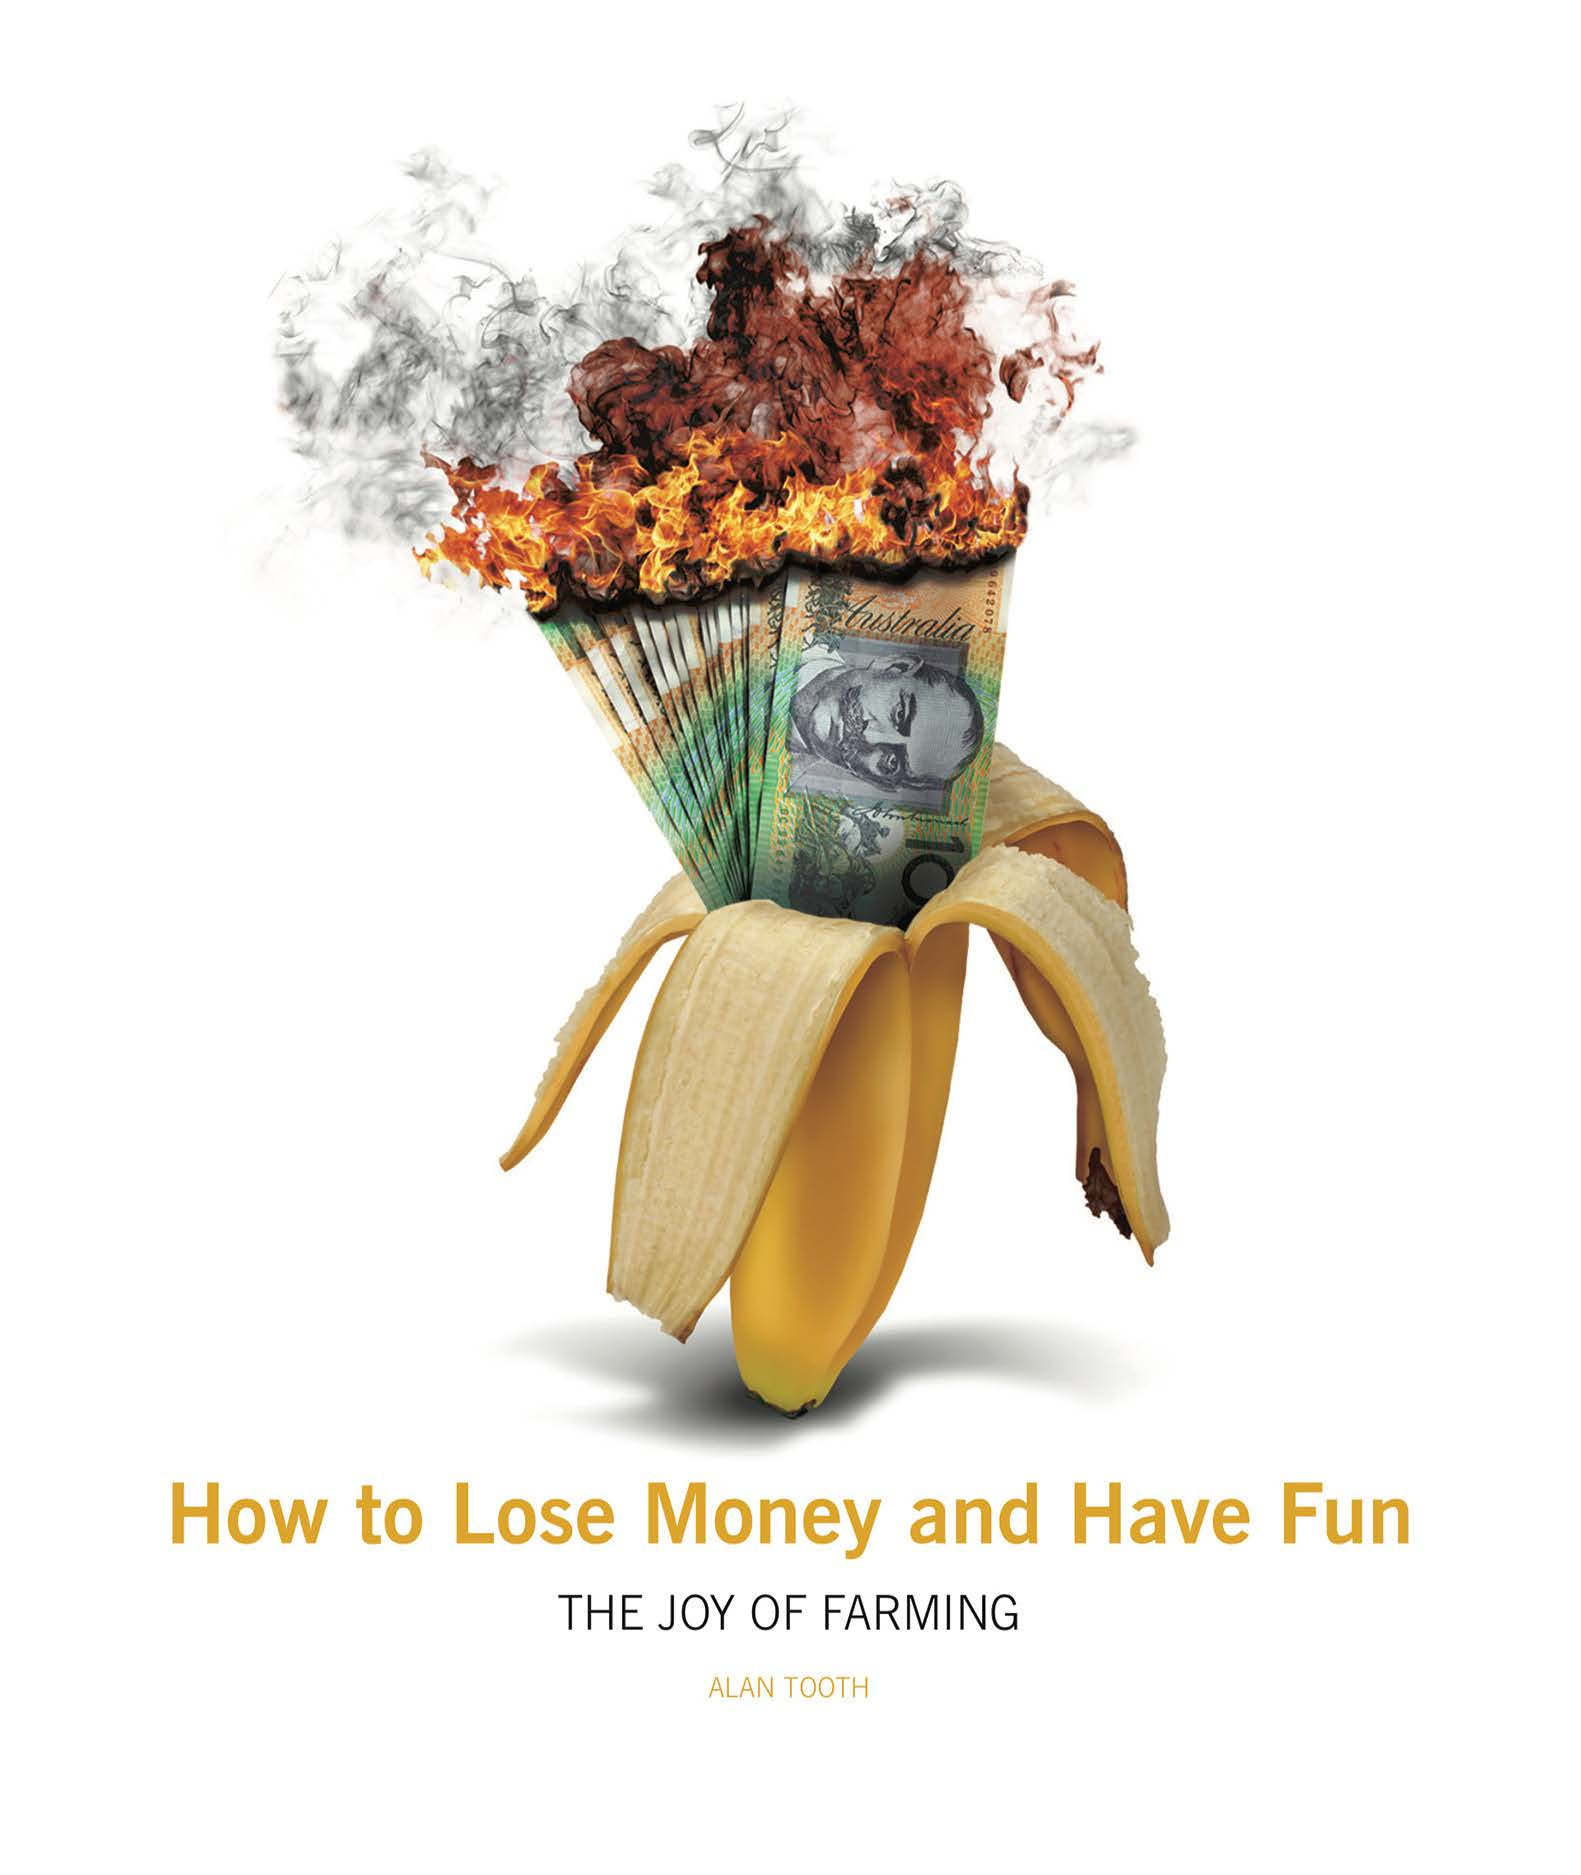 How to Lose Money and Have Fun - The Joy of Farming by Alan Tooth